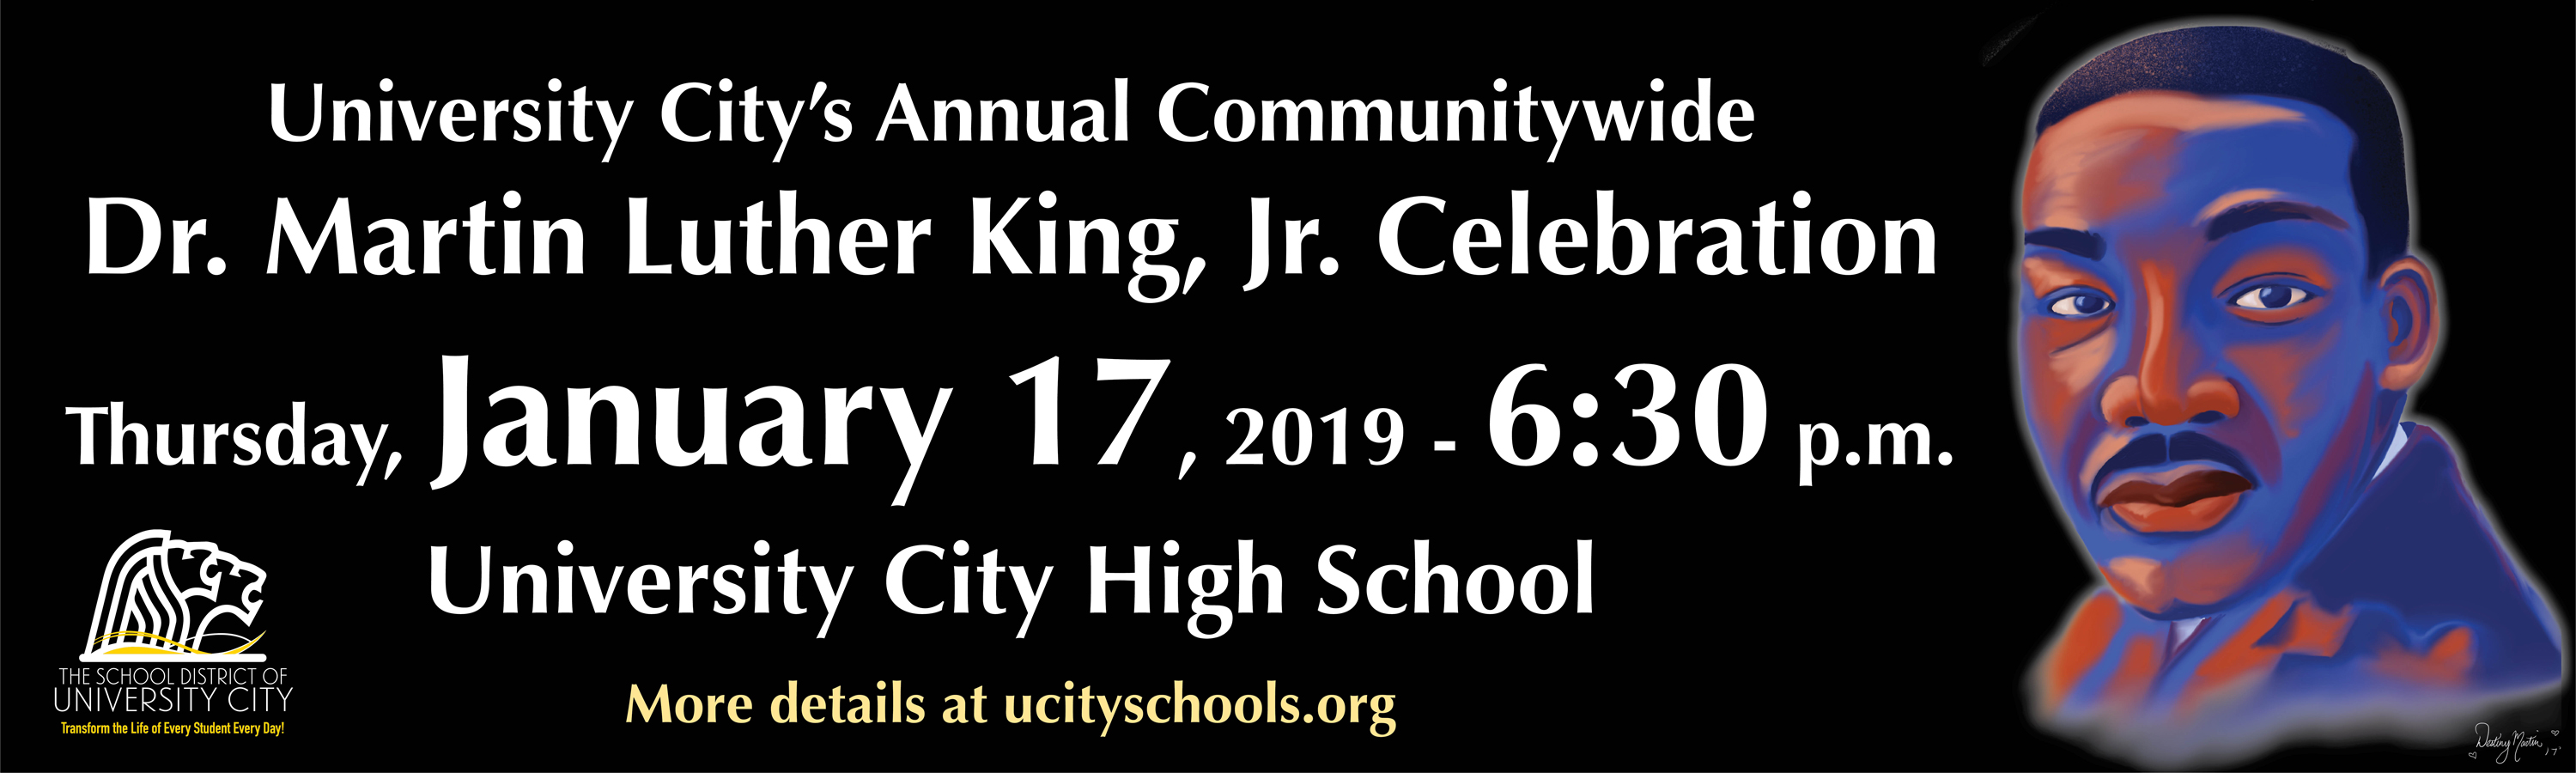 District Hosts 33rd Annual MLK Celebration